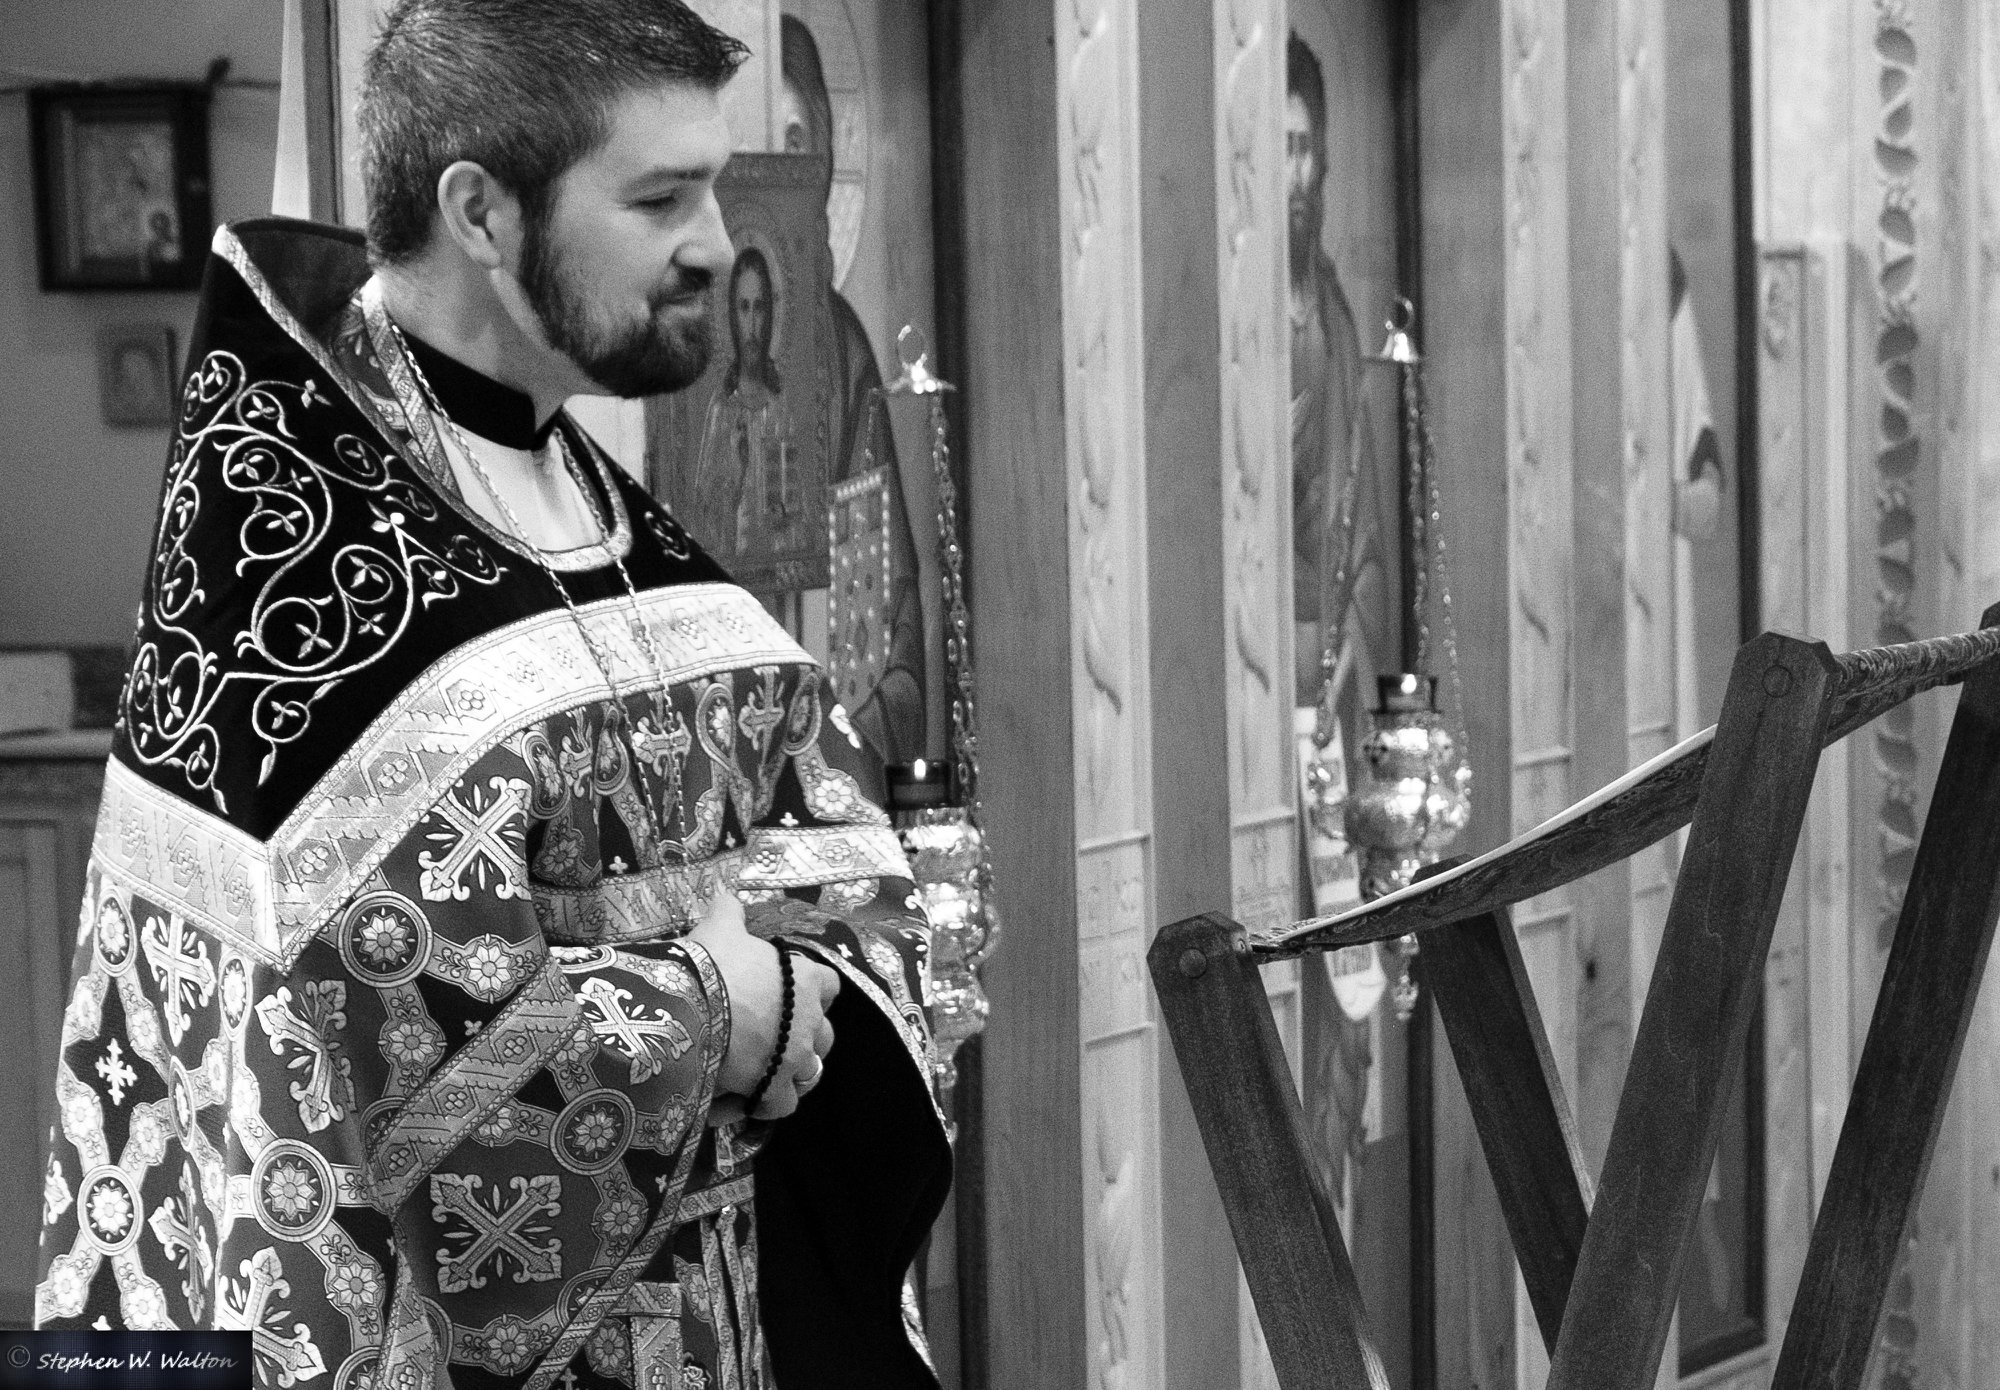 priest giving sermon looking at notes on lectern black and white